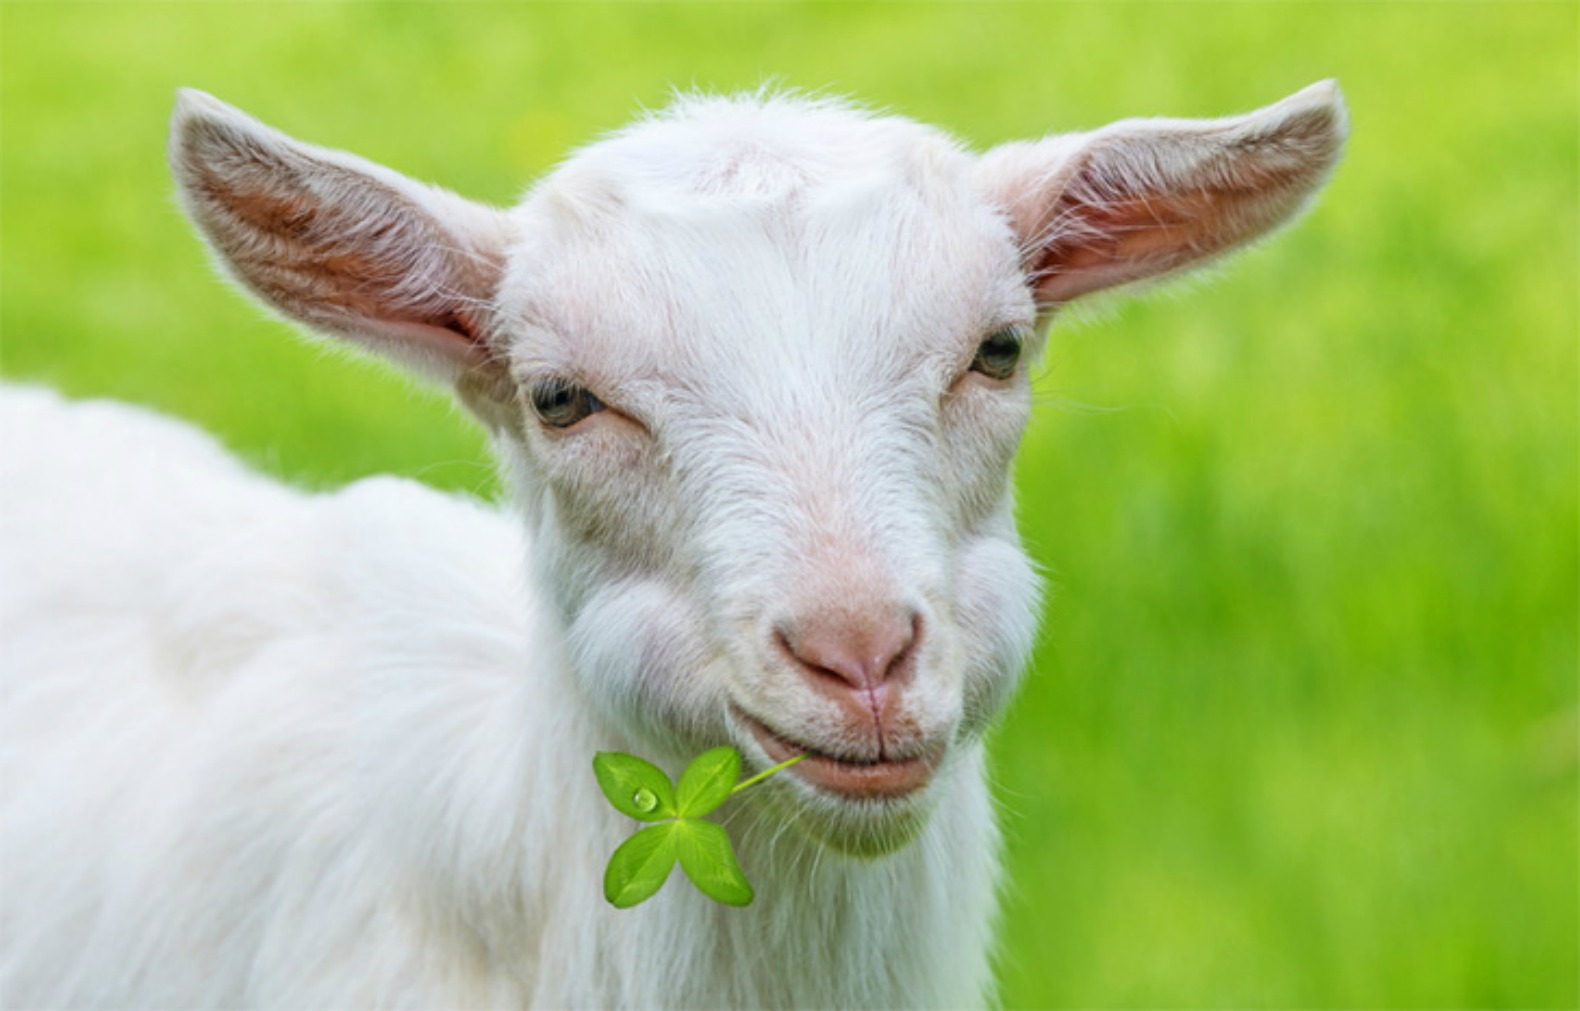 Herd of hungry goats will eat their way through Prospect Park as part of cleanup